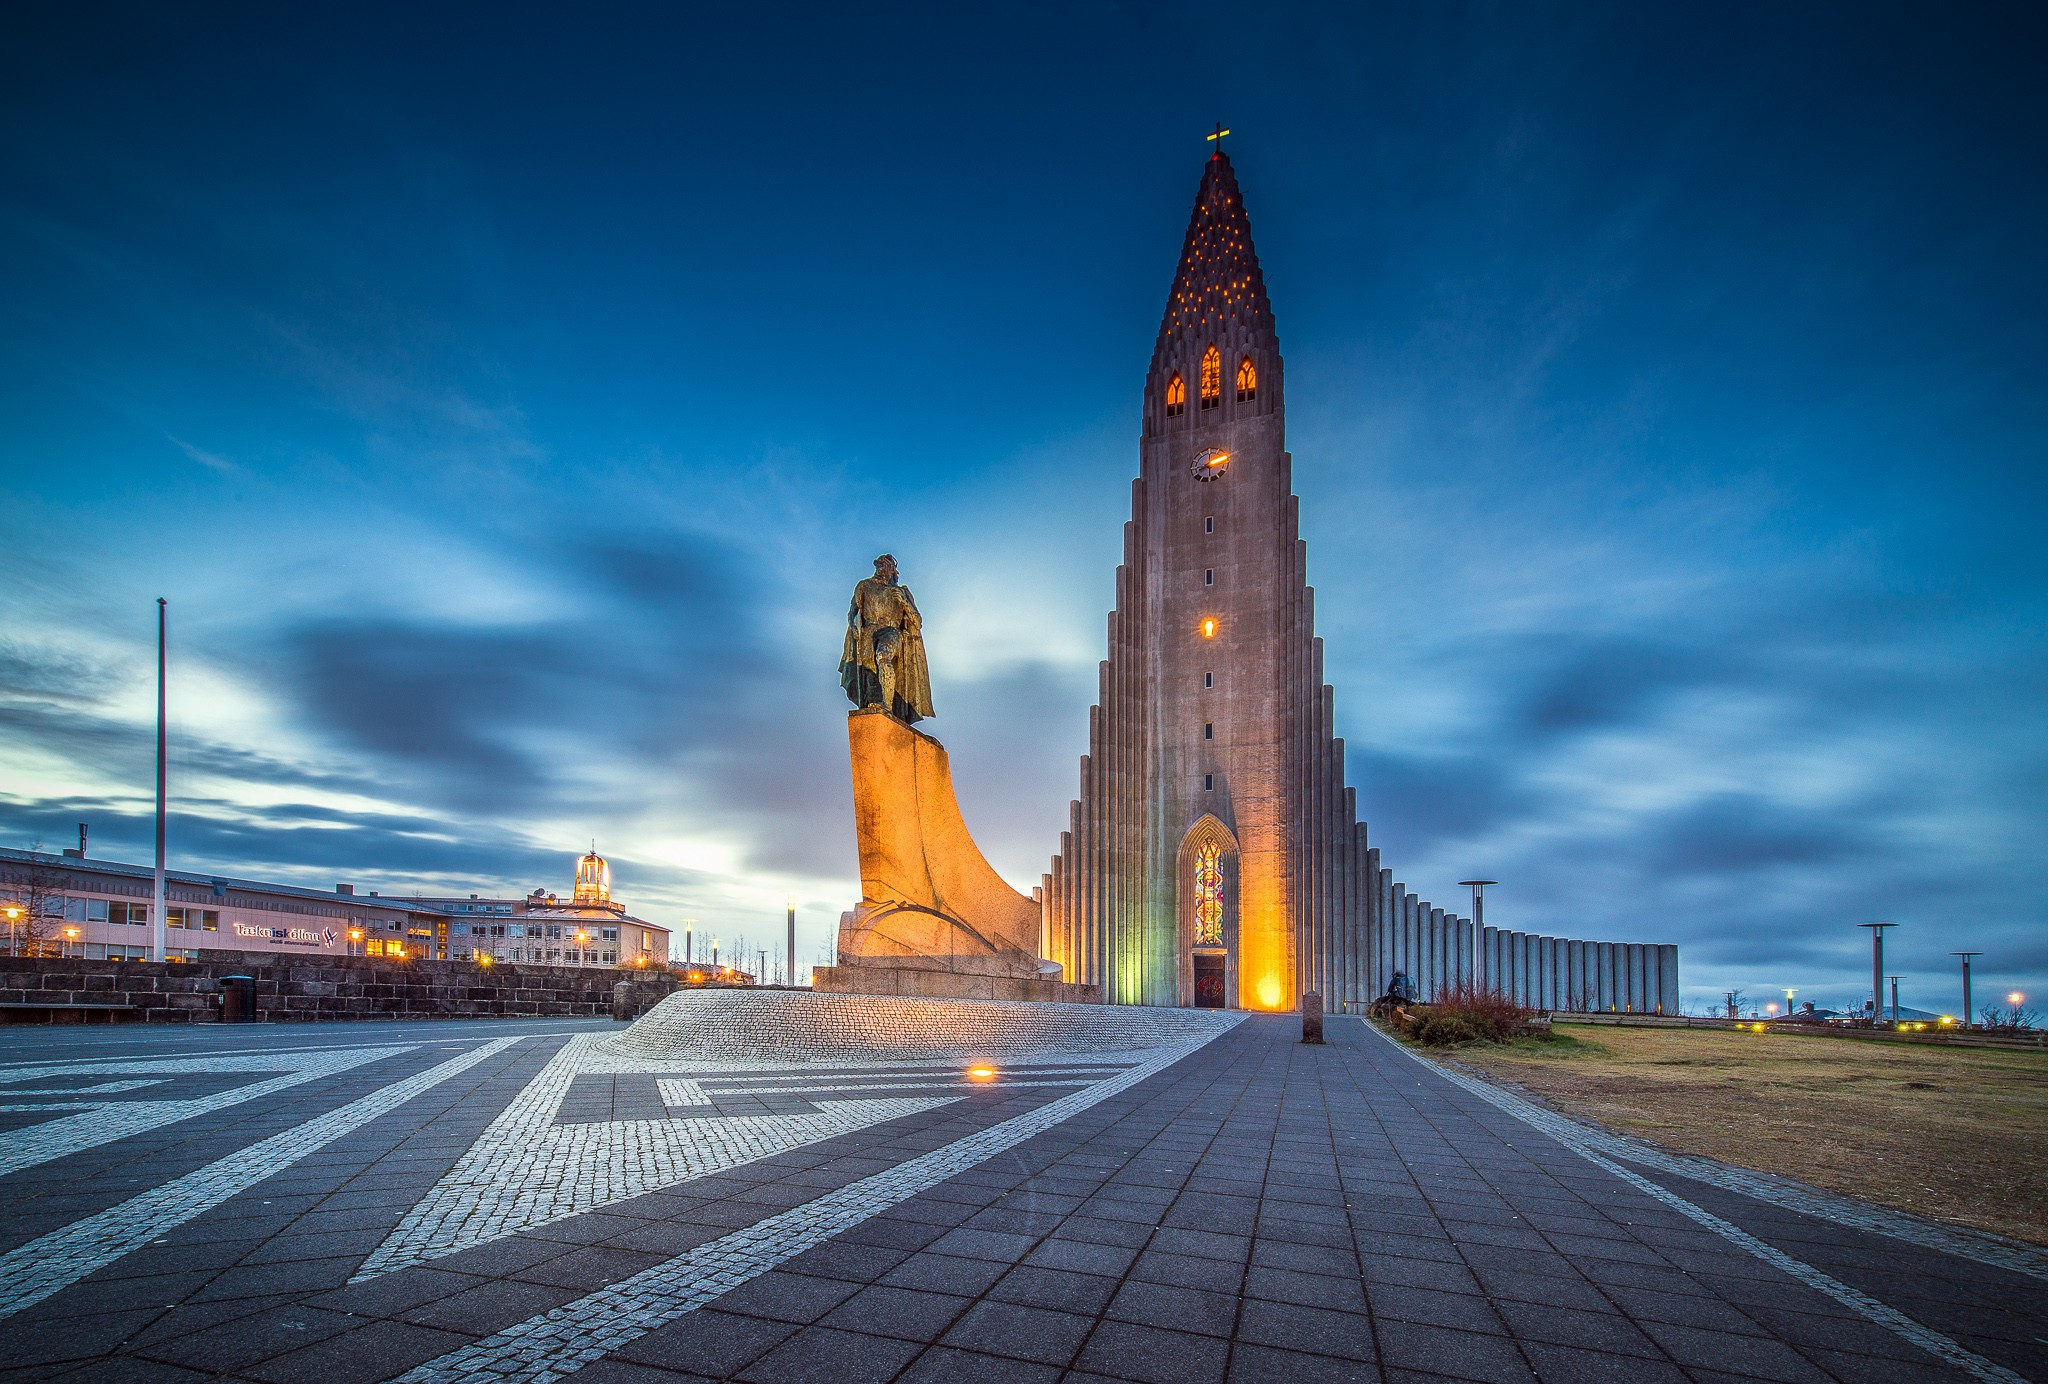 most-beautiful-cathedrals-15